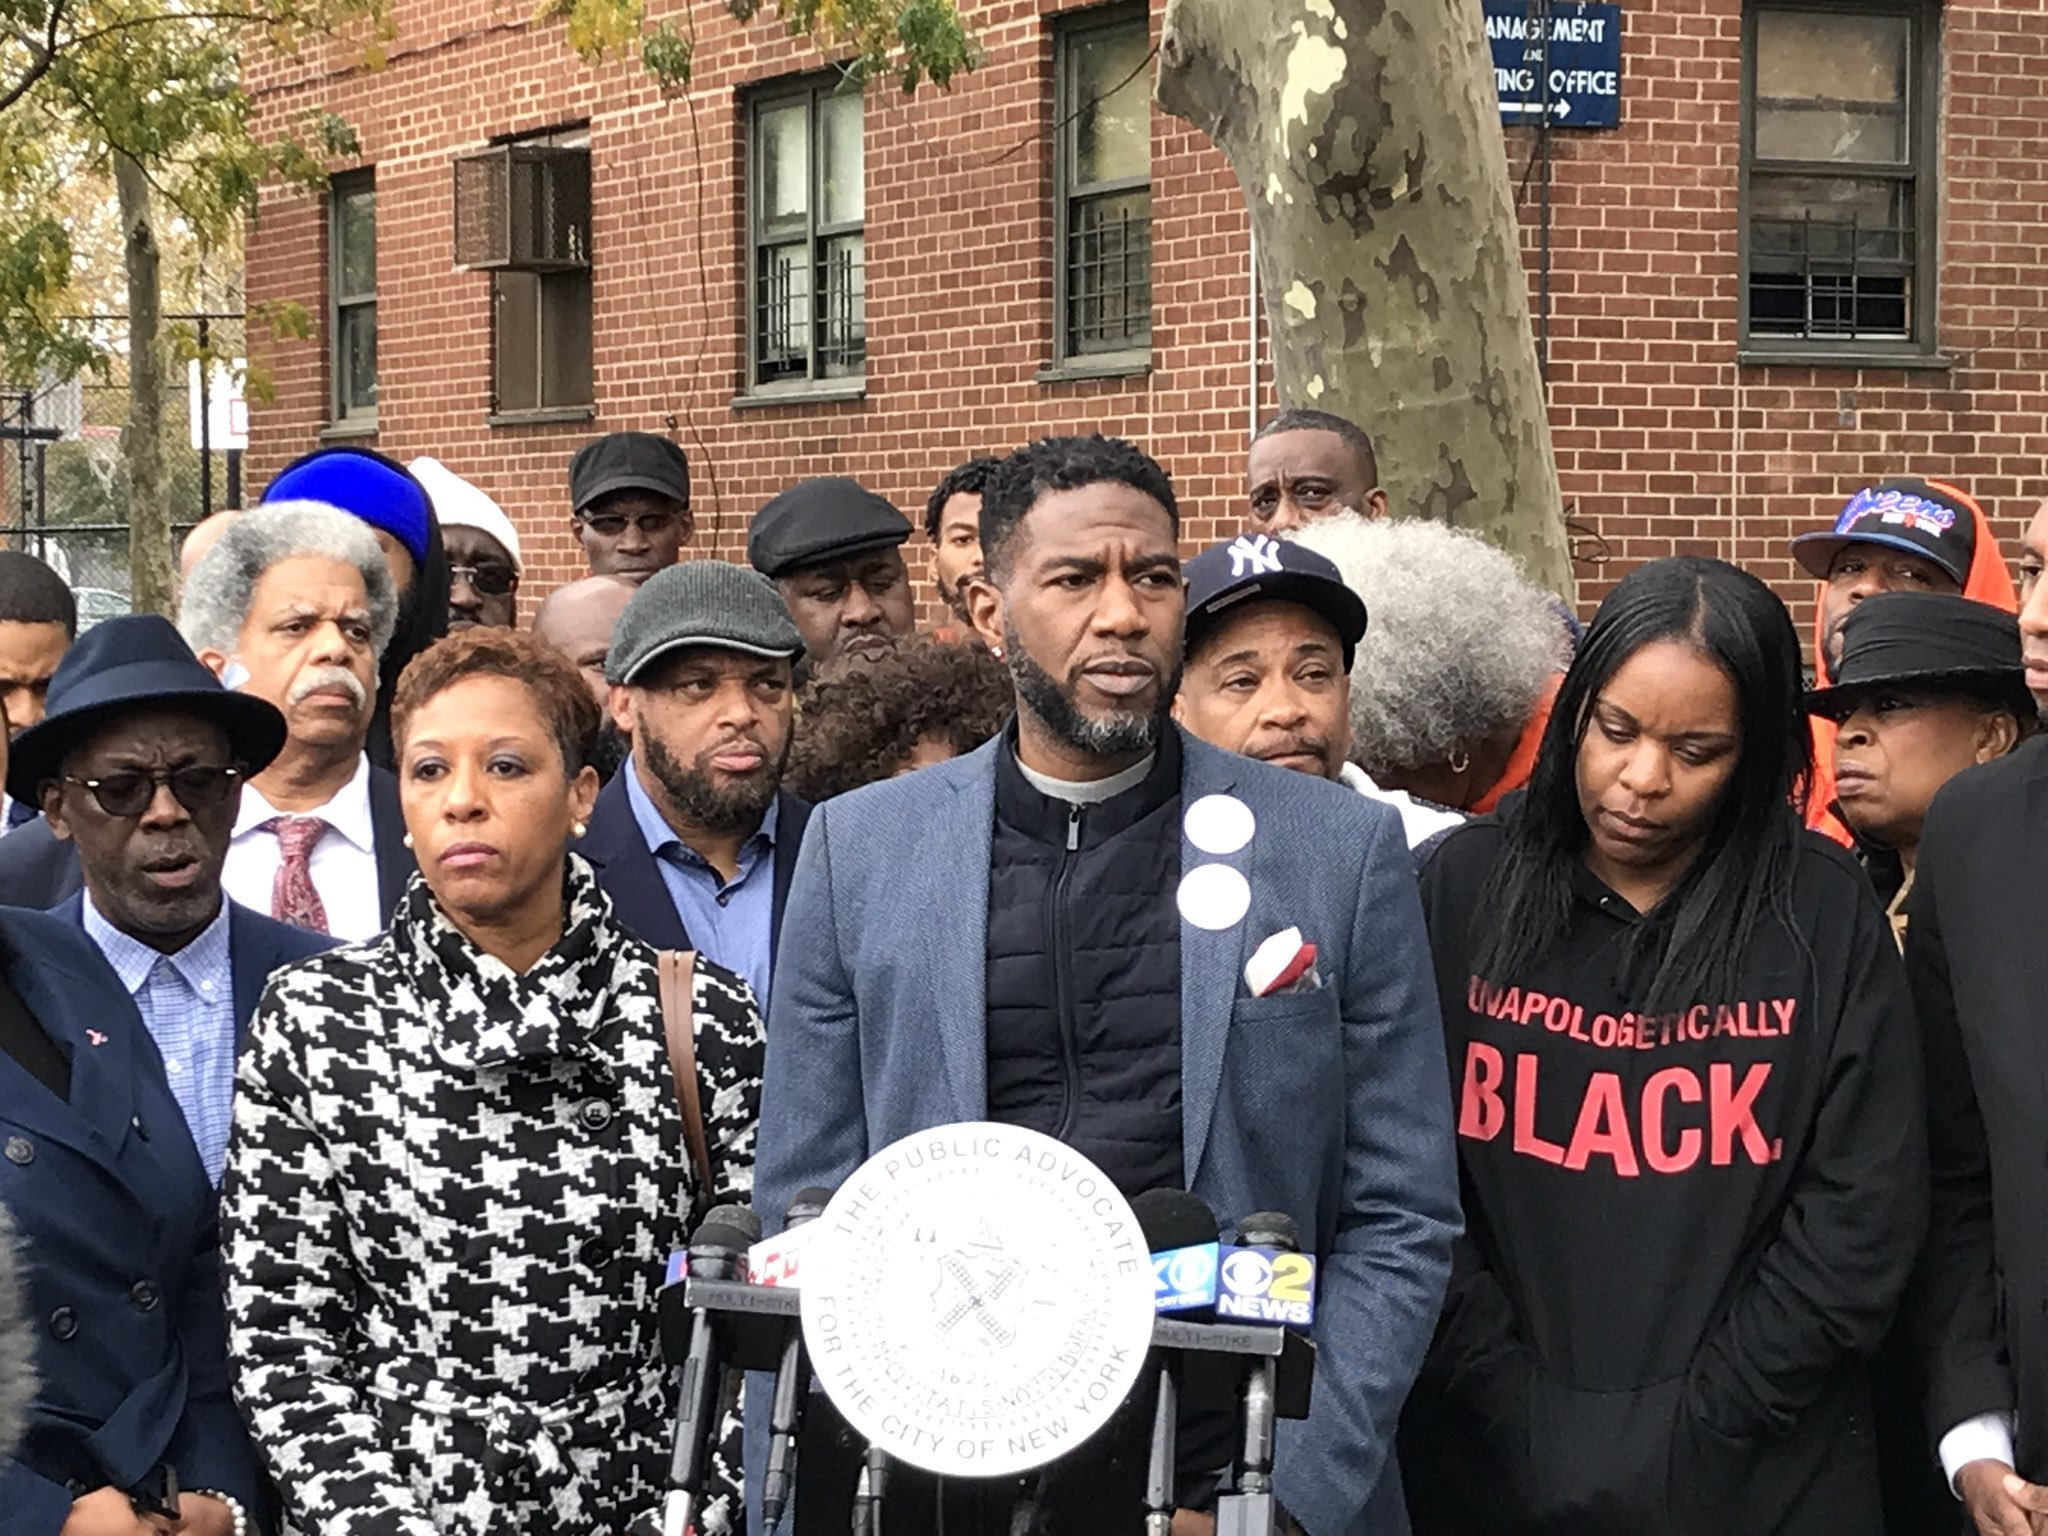 Public advocate Jumaane Williams (right) and Councilmember Adrienne Adams called on the city to invest more money for jobs, education and community programs in Southeast Queens at a press conference outside of the Baisley Park Houses Tuesday. A 14-year-old boy was shot and killed at a nearby basketball court Saturday.  Eagle  photos by David Brand.